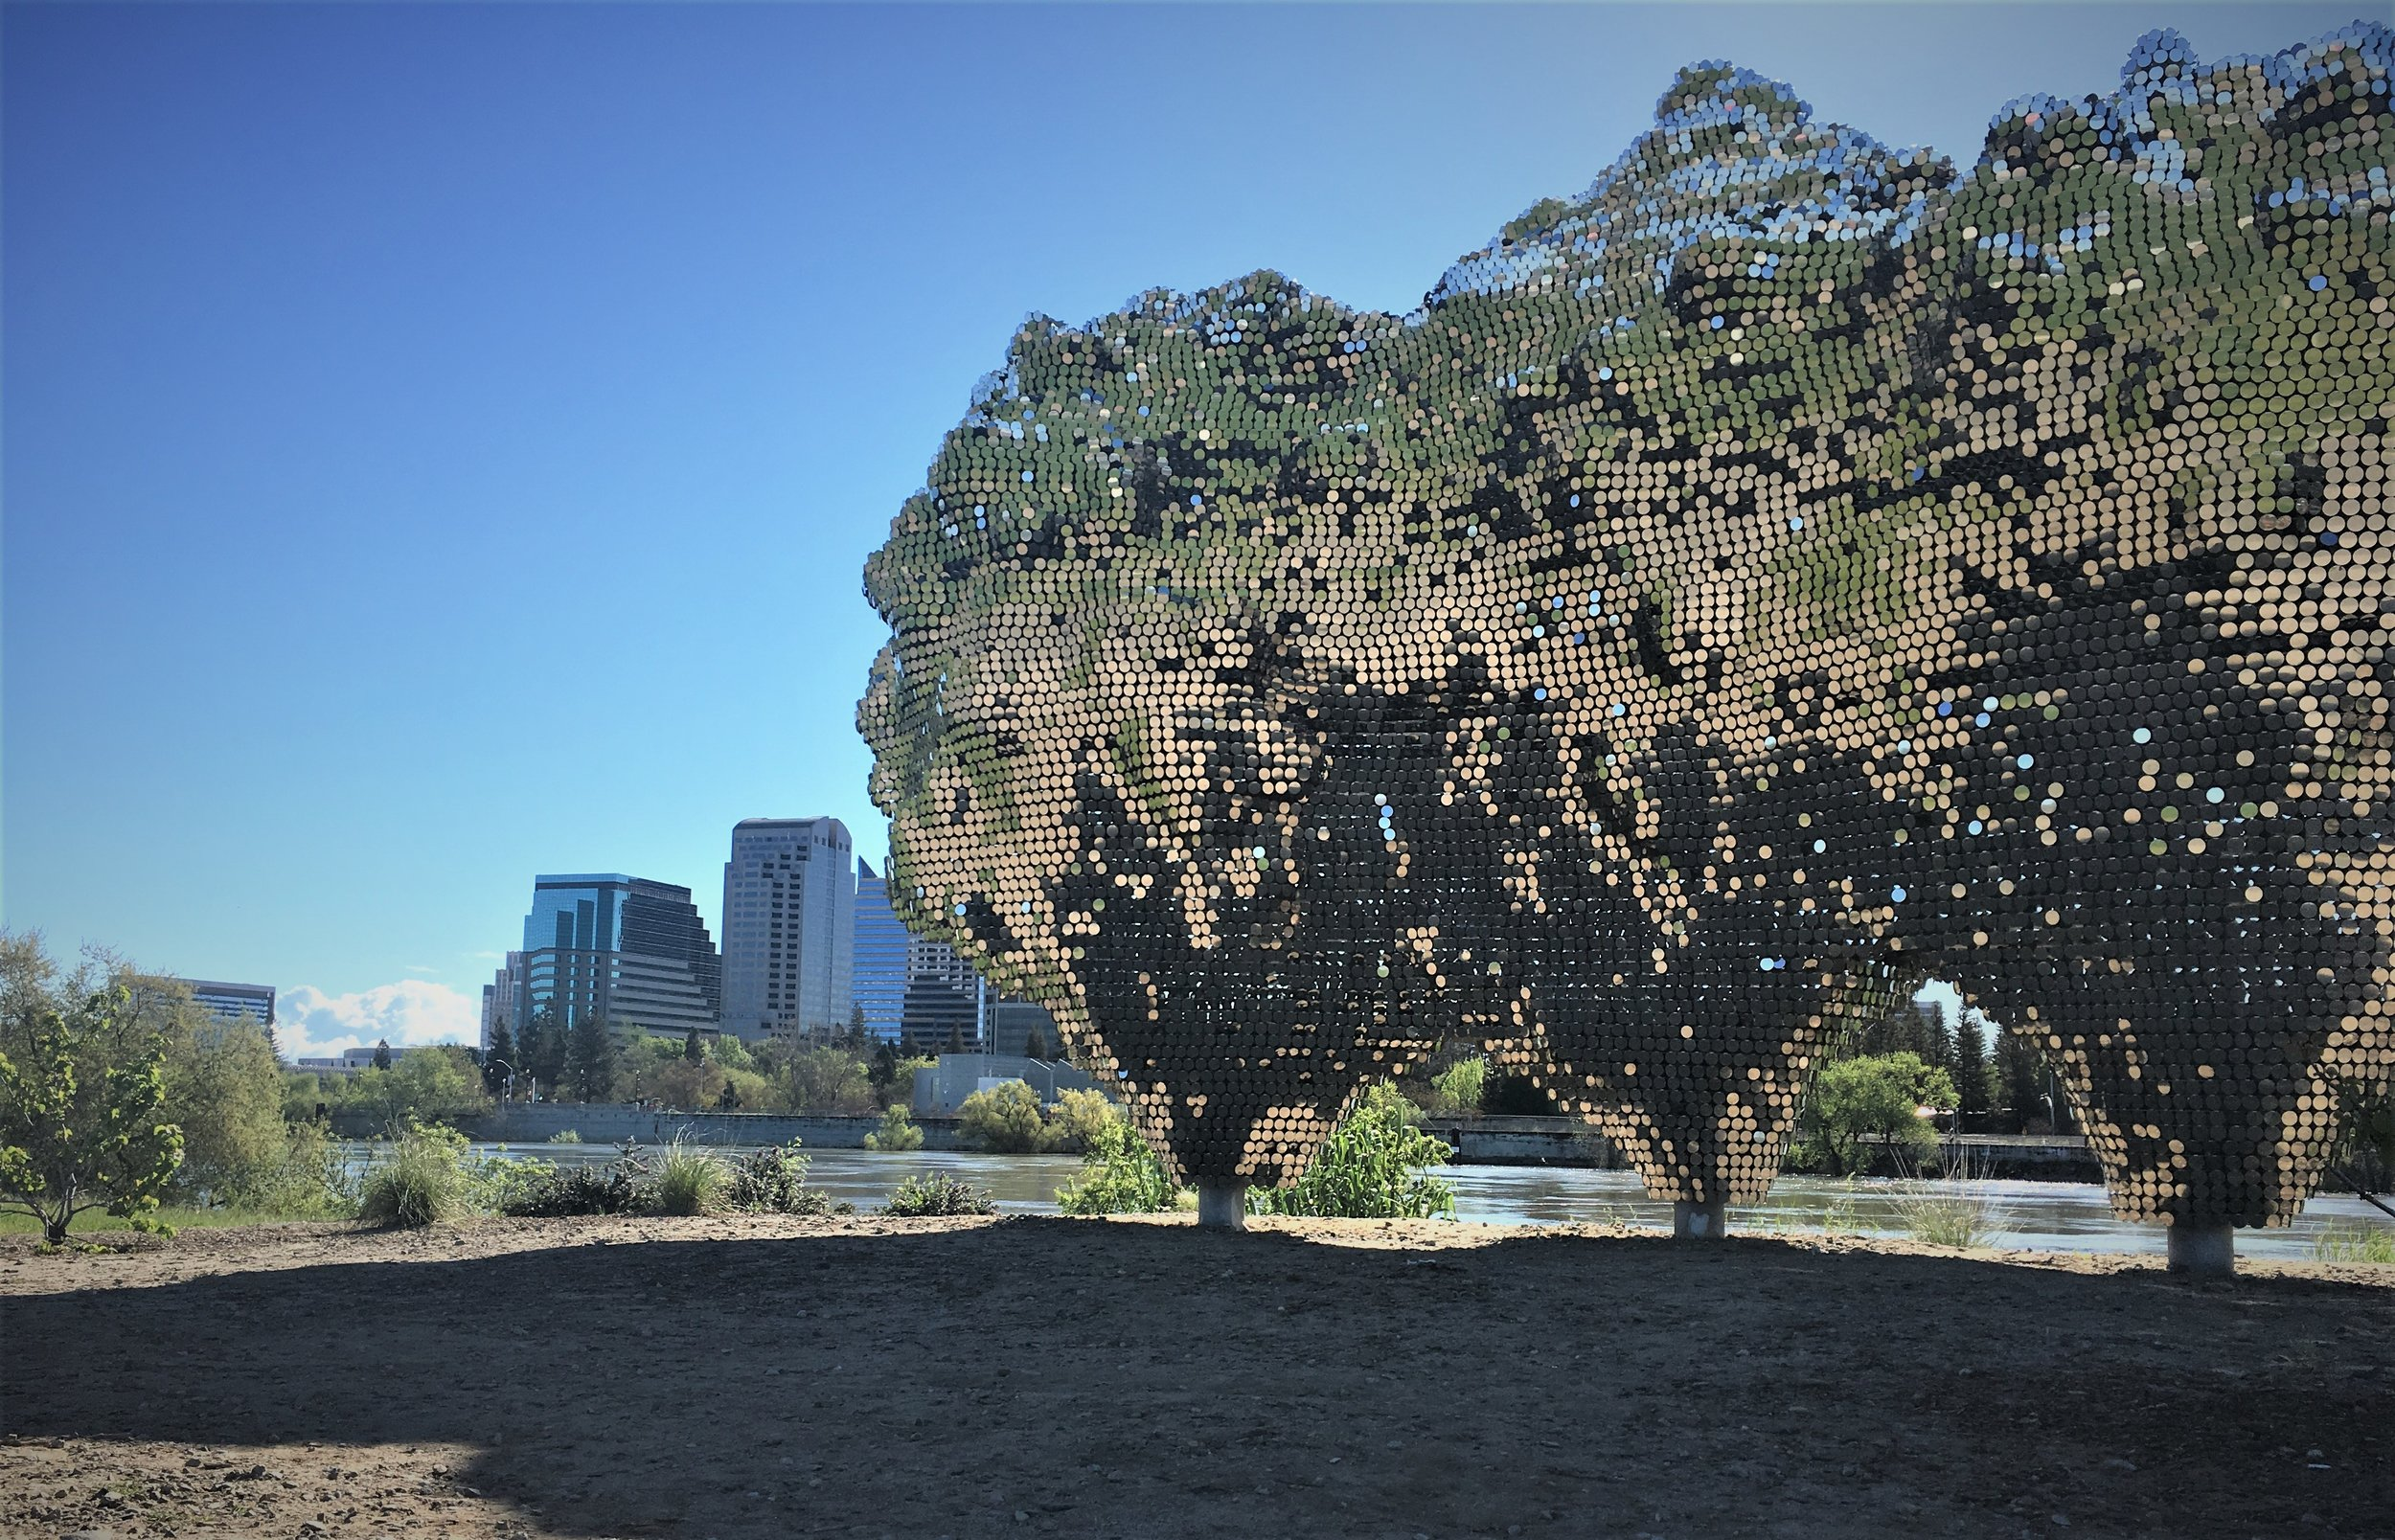 """The newest piece of public art along the River Walk. """"Subtile"""" is a shimmering and towering sculpture by Czech artist Federico Diaz. The $500,000 piece is the emerging artist's first outdoor public art piece."""